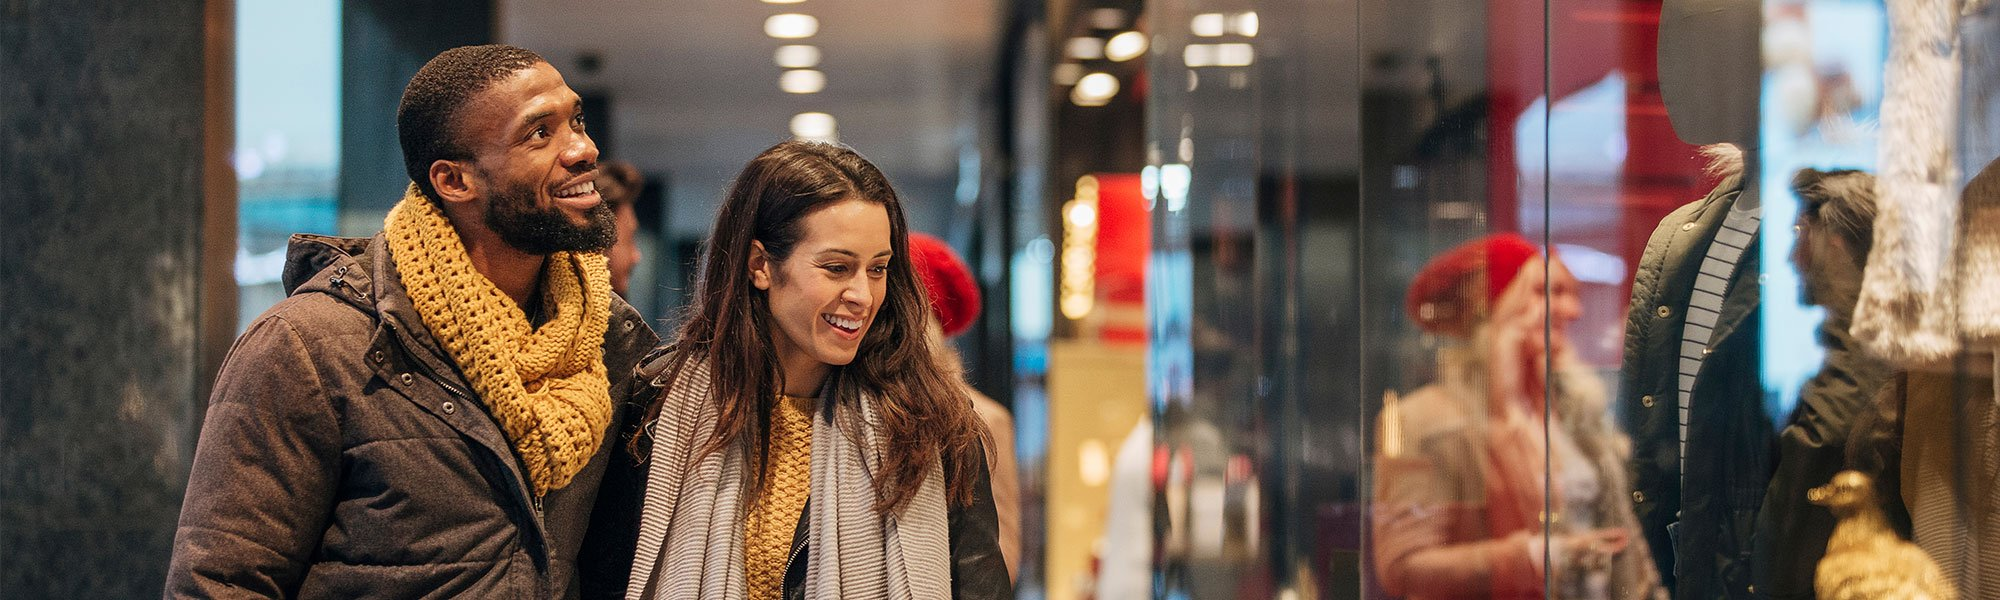 Four Ways Holiday 2019 Spending Will Impact Retail Real Estate